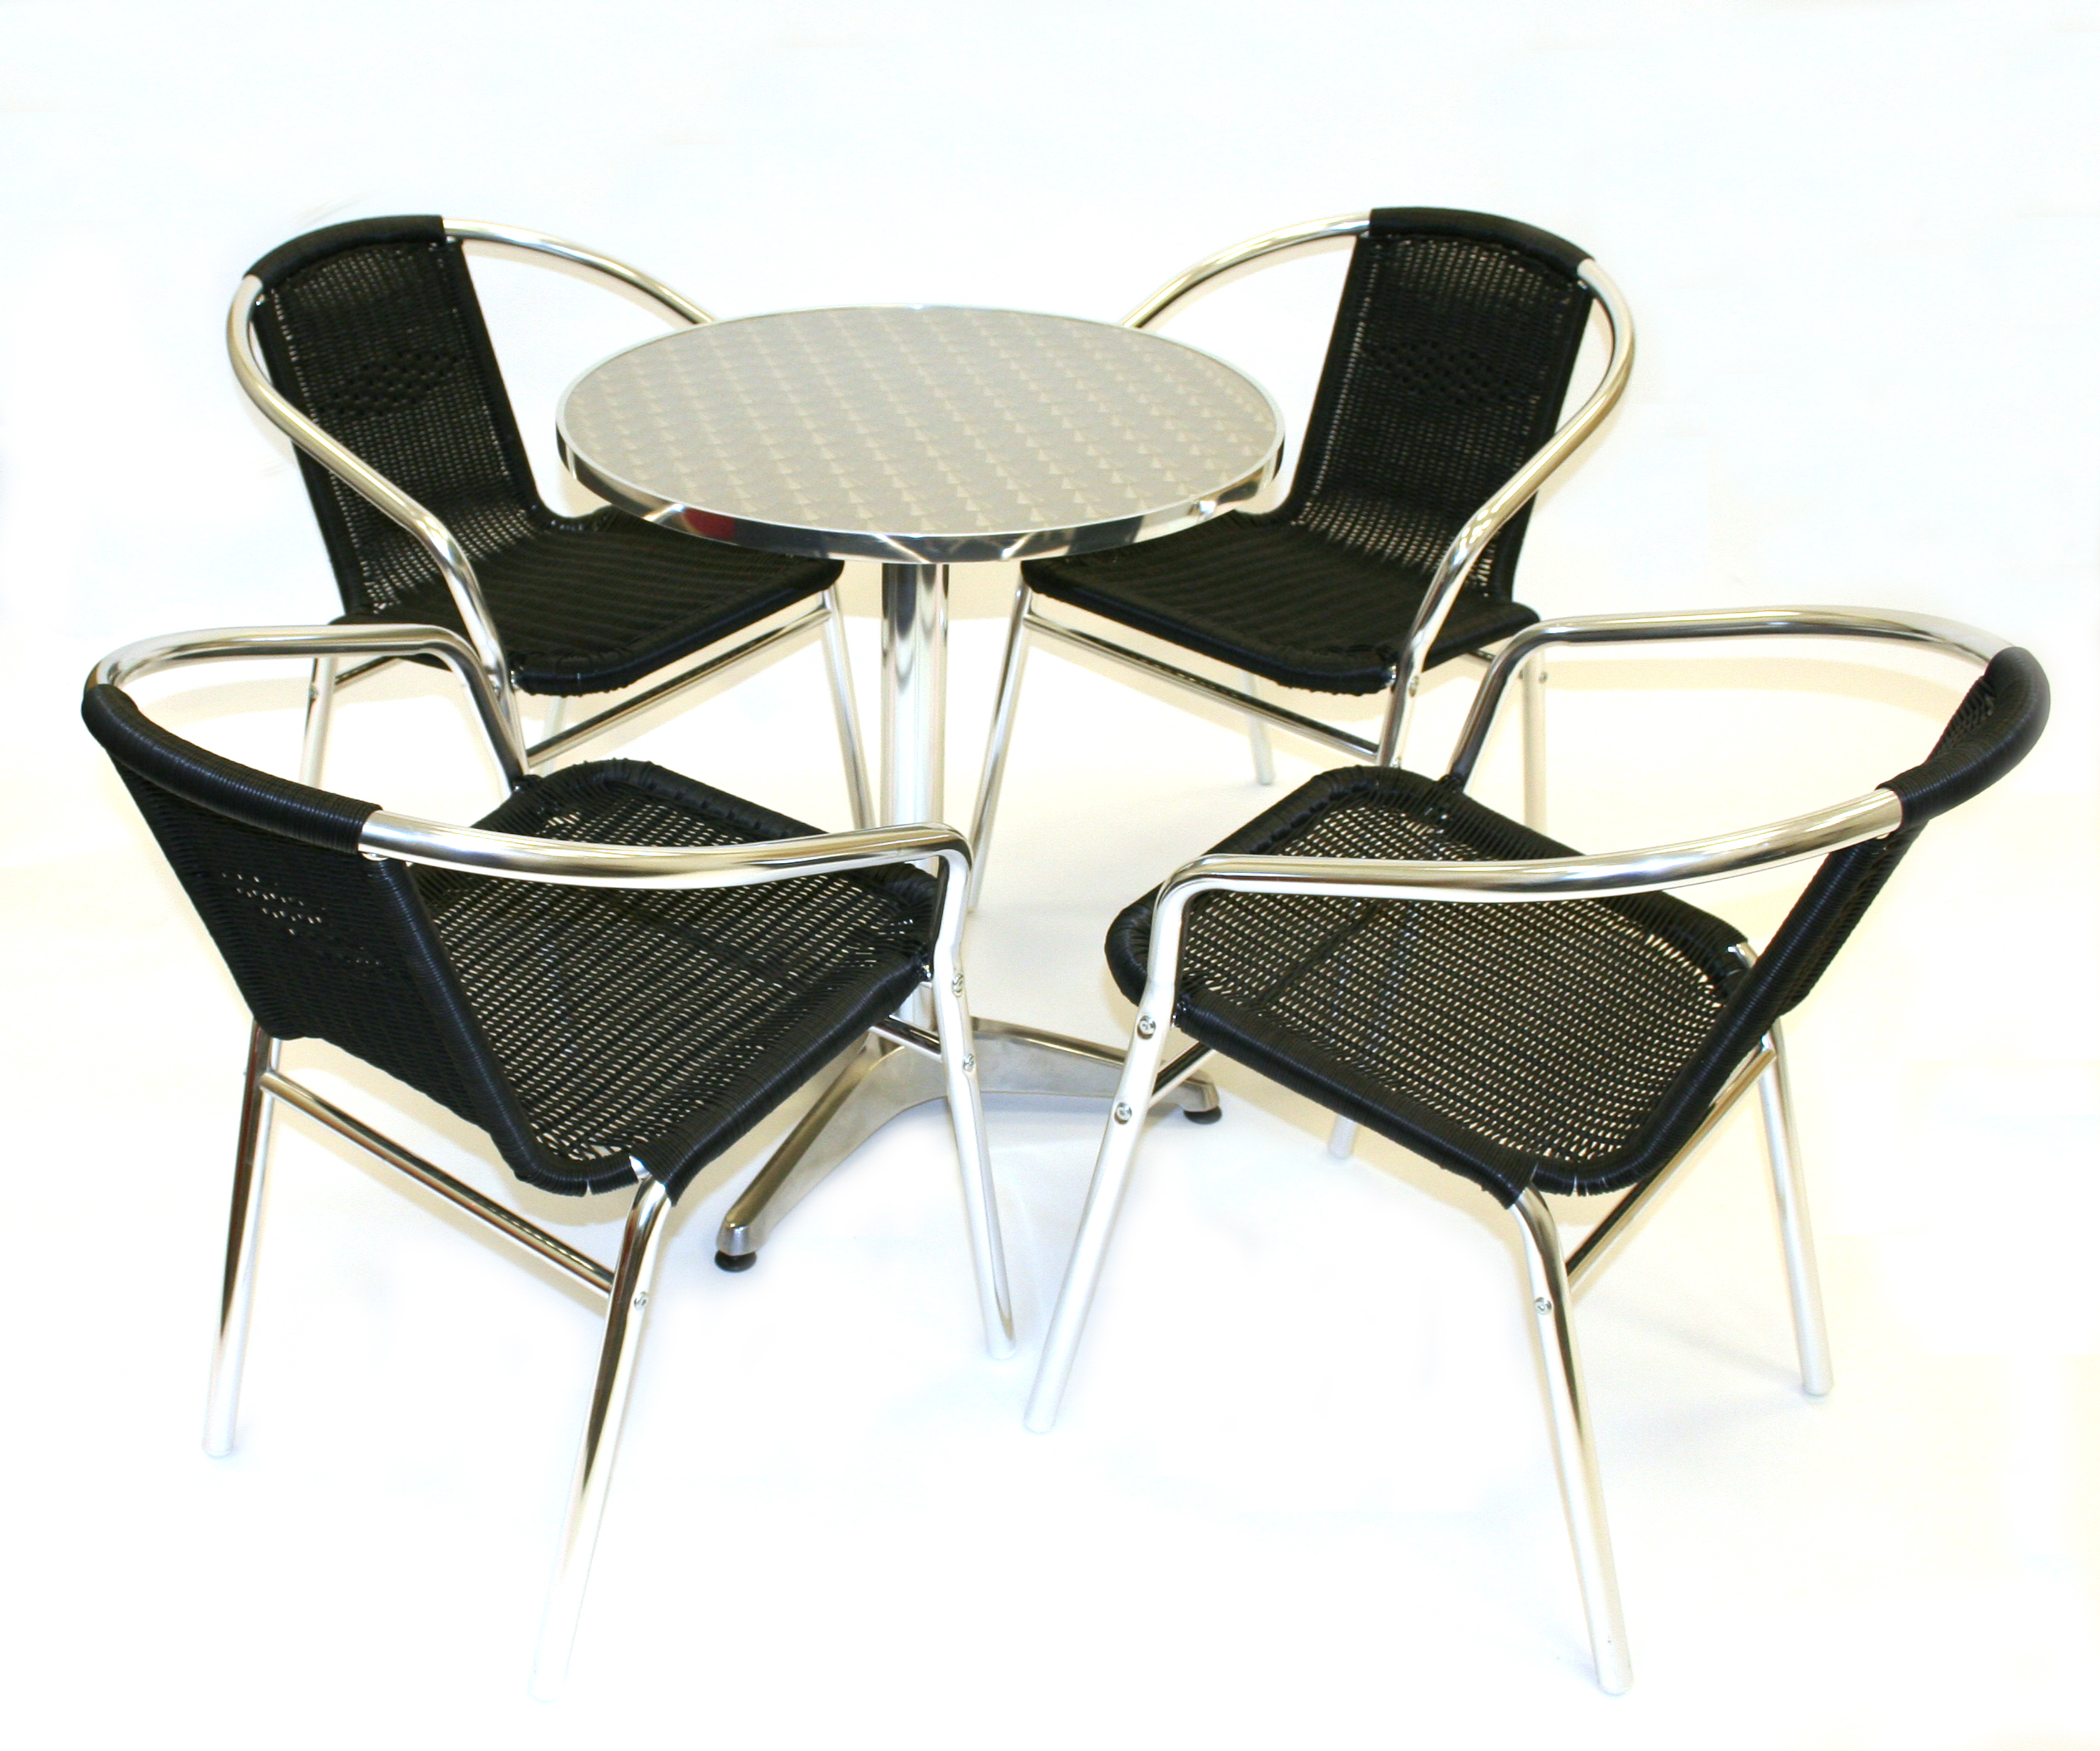 Black Rattan Garden Furniture Patio Sets - BE Event Hire